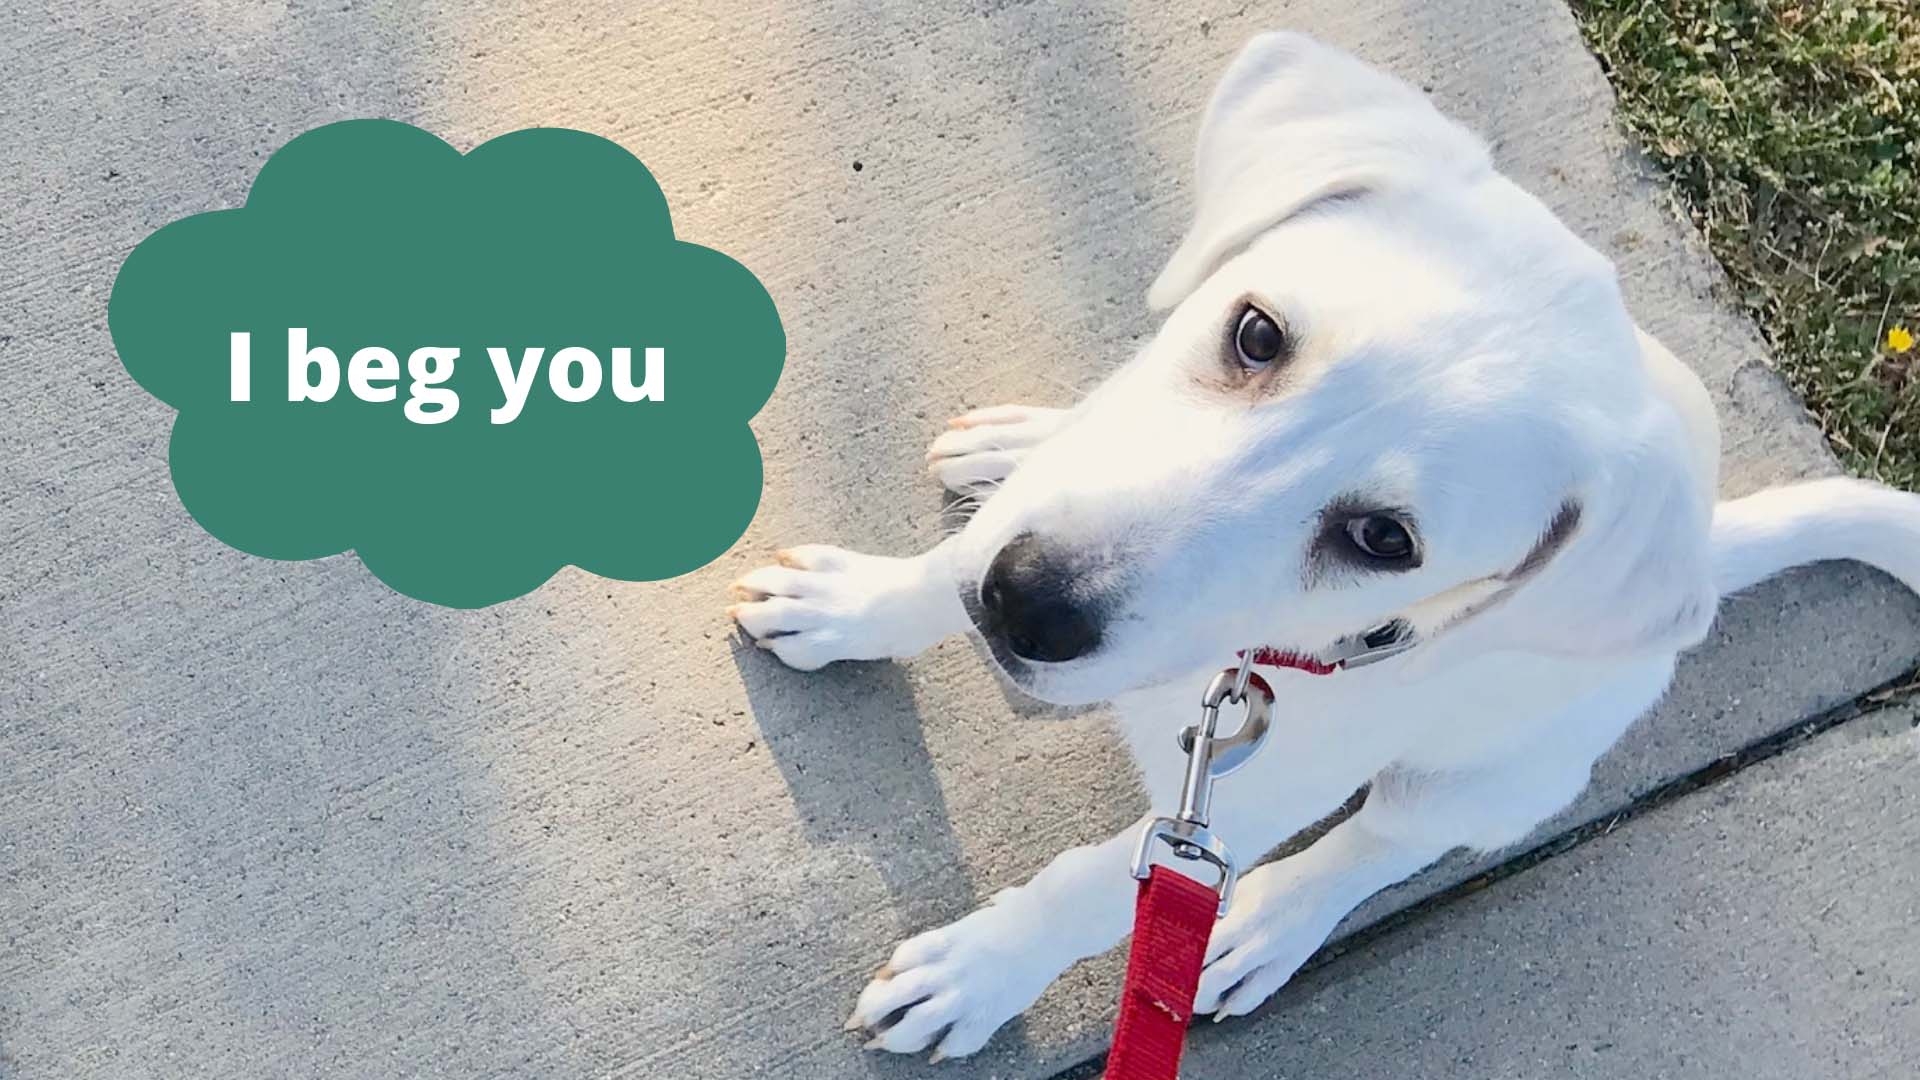 Pretty please take the survey. The puppy begs you. Image courtesy Angelica Wedell